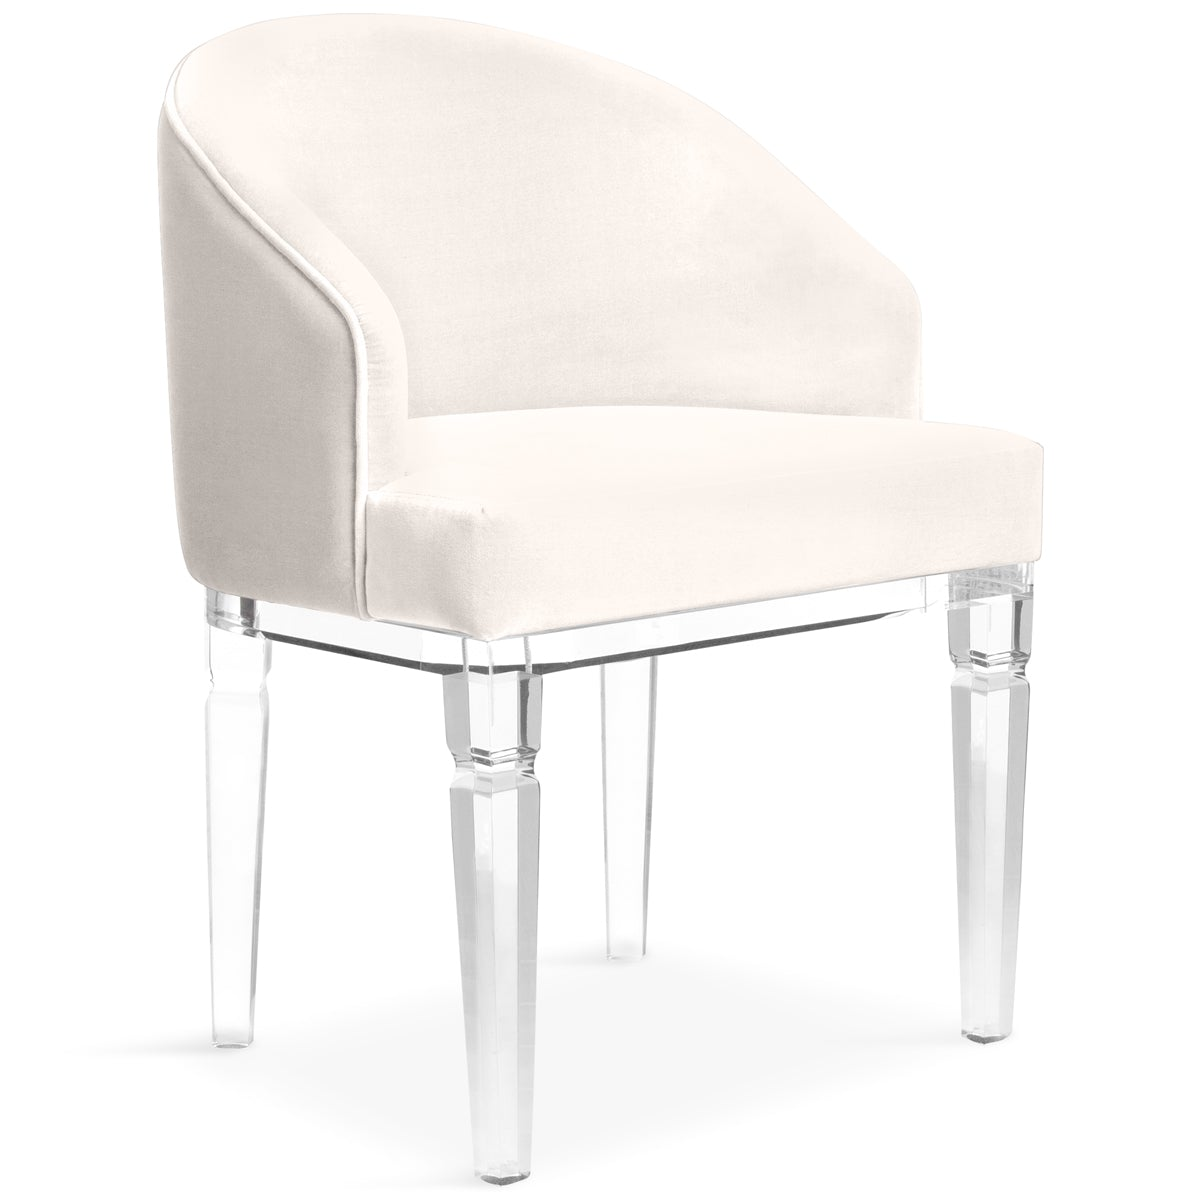 Bel Air Dining Chair - ModShop1.com